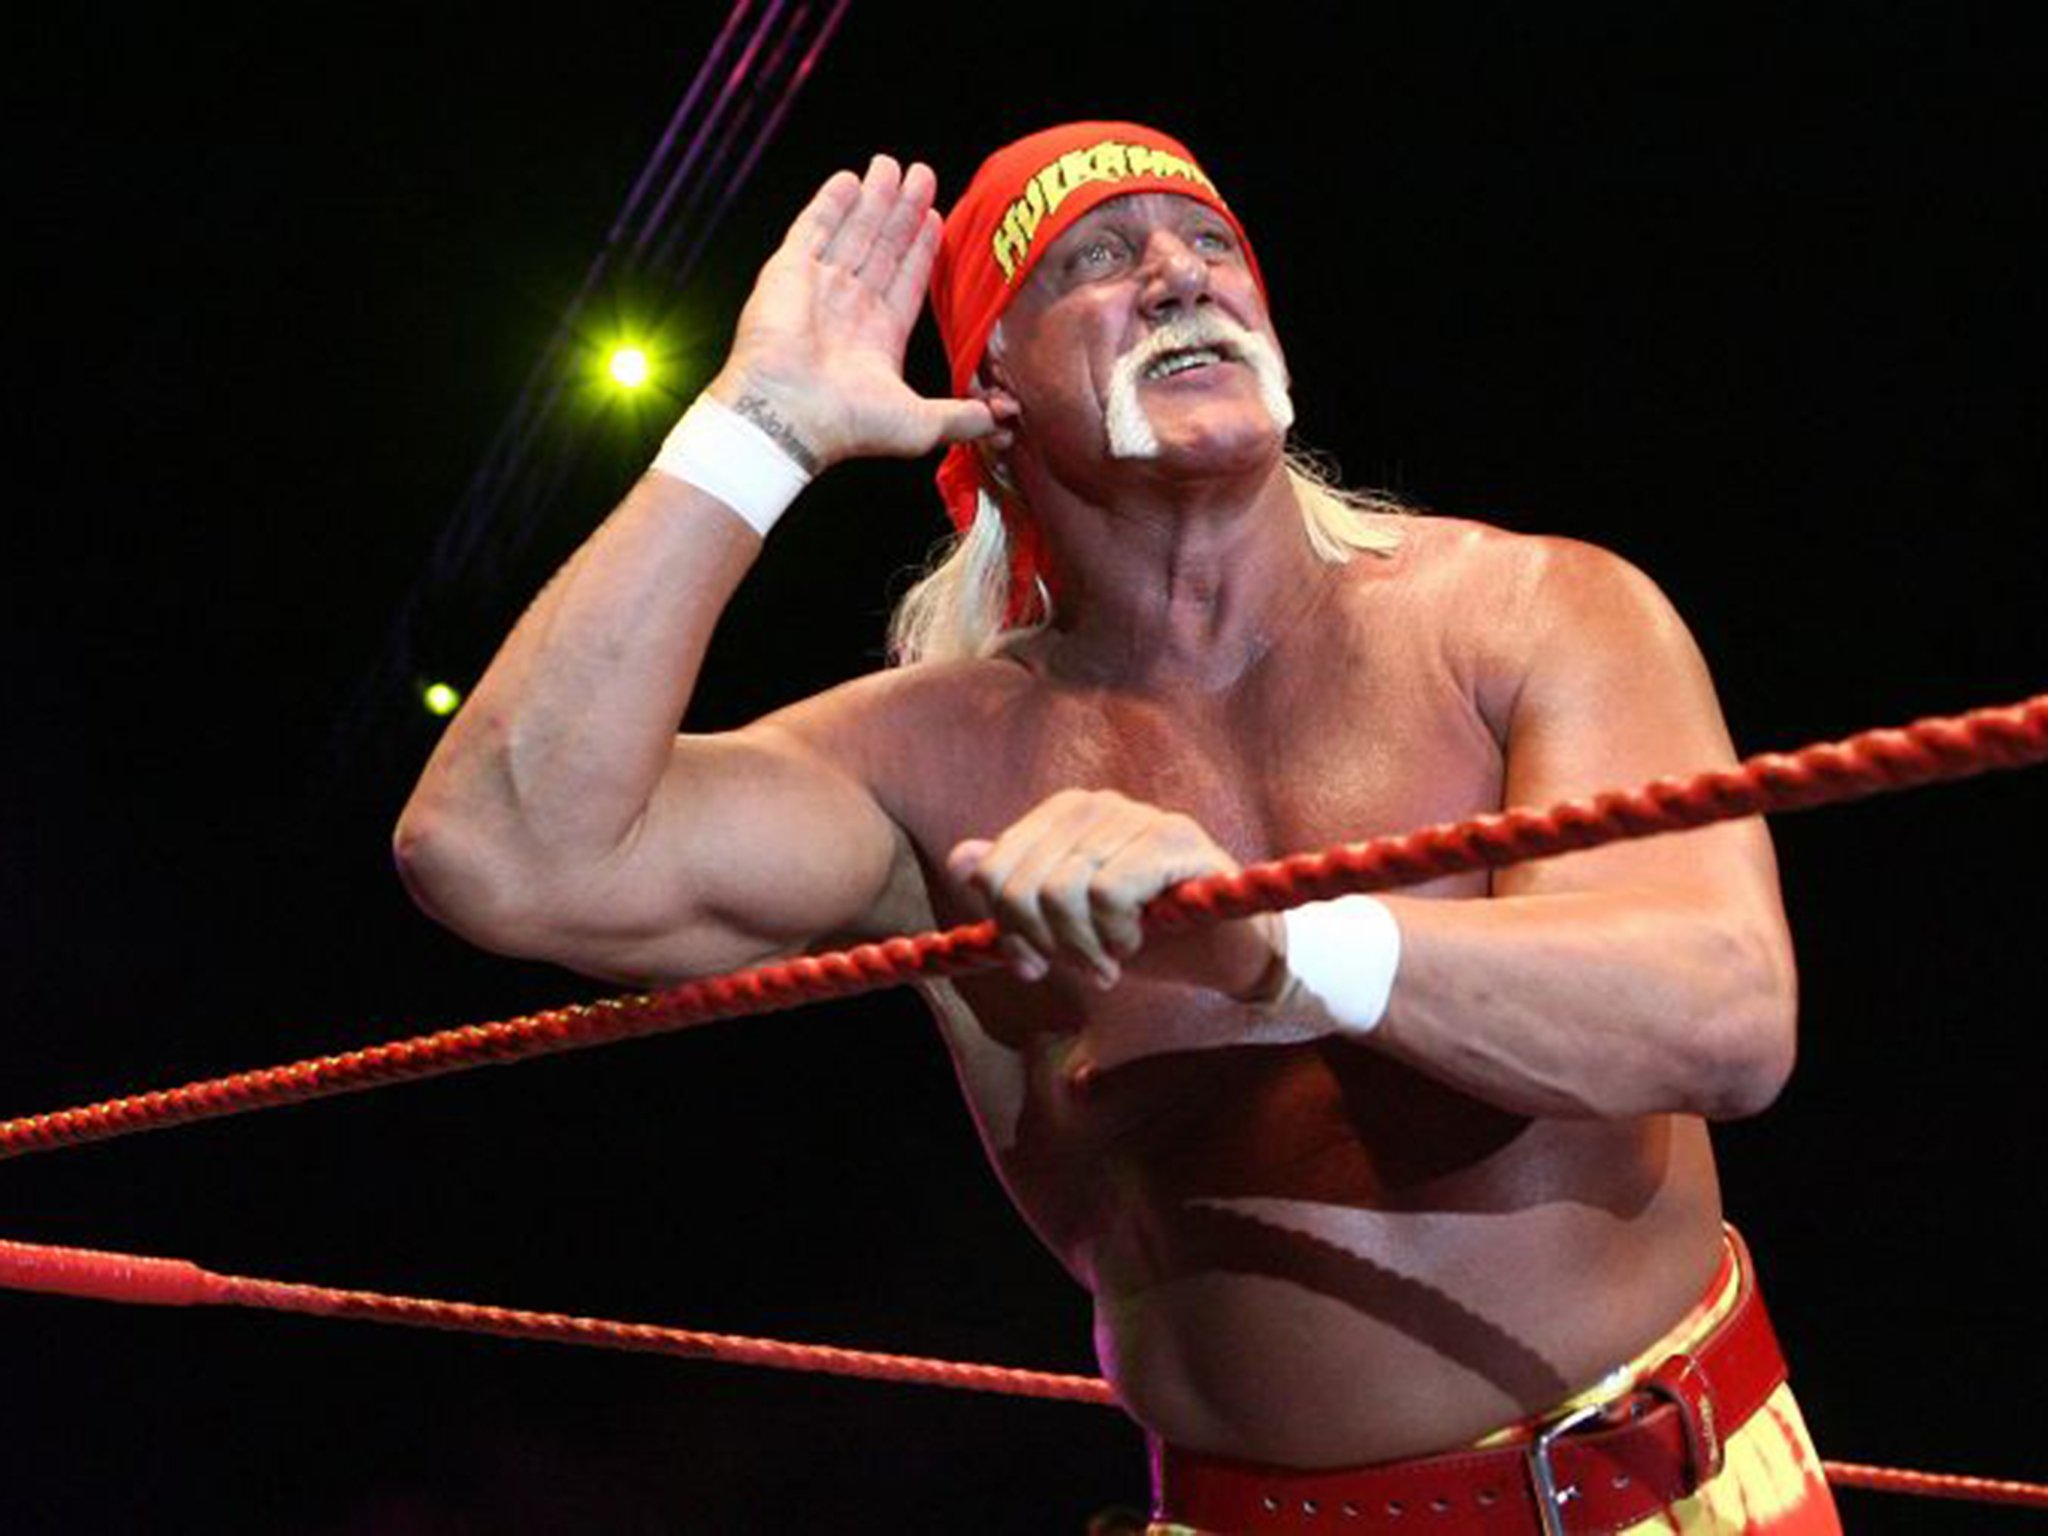 Hulk Hogan's Net Worth 2017: How much has Hogan earned from his four decade long career?